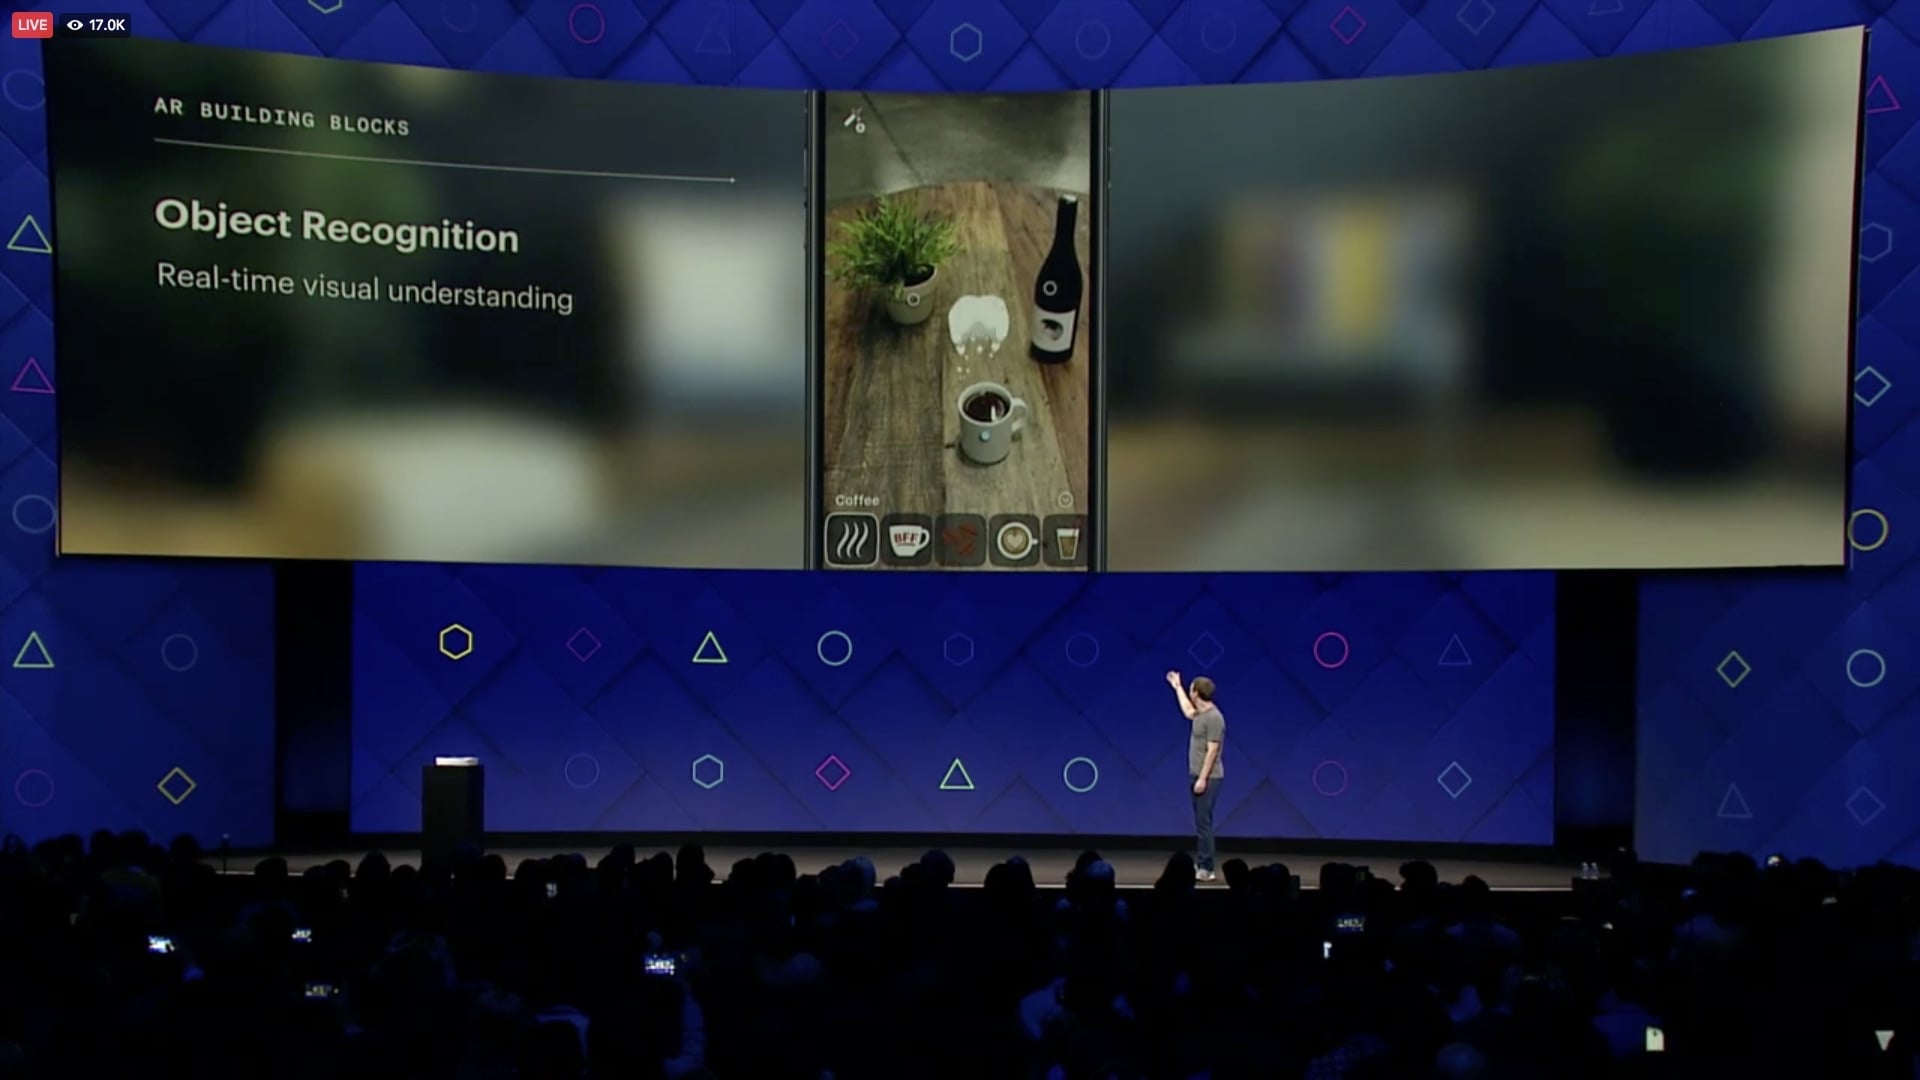 Facebook's Camera Effects Platform - Object Recognition